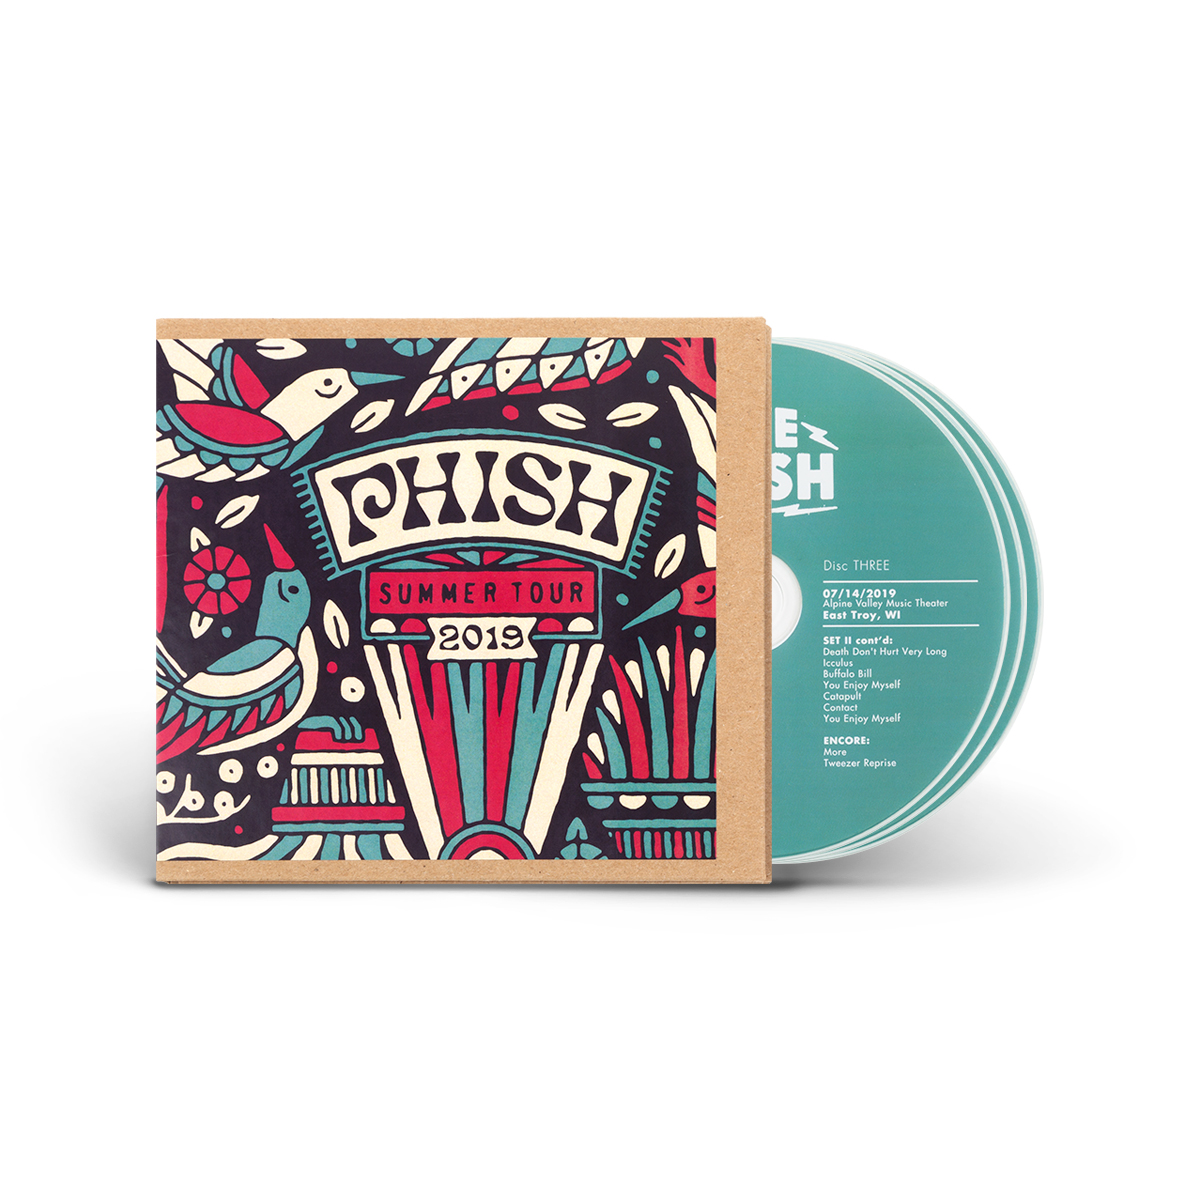 Live Phish 7/14/2019 - East Troy